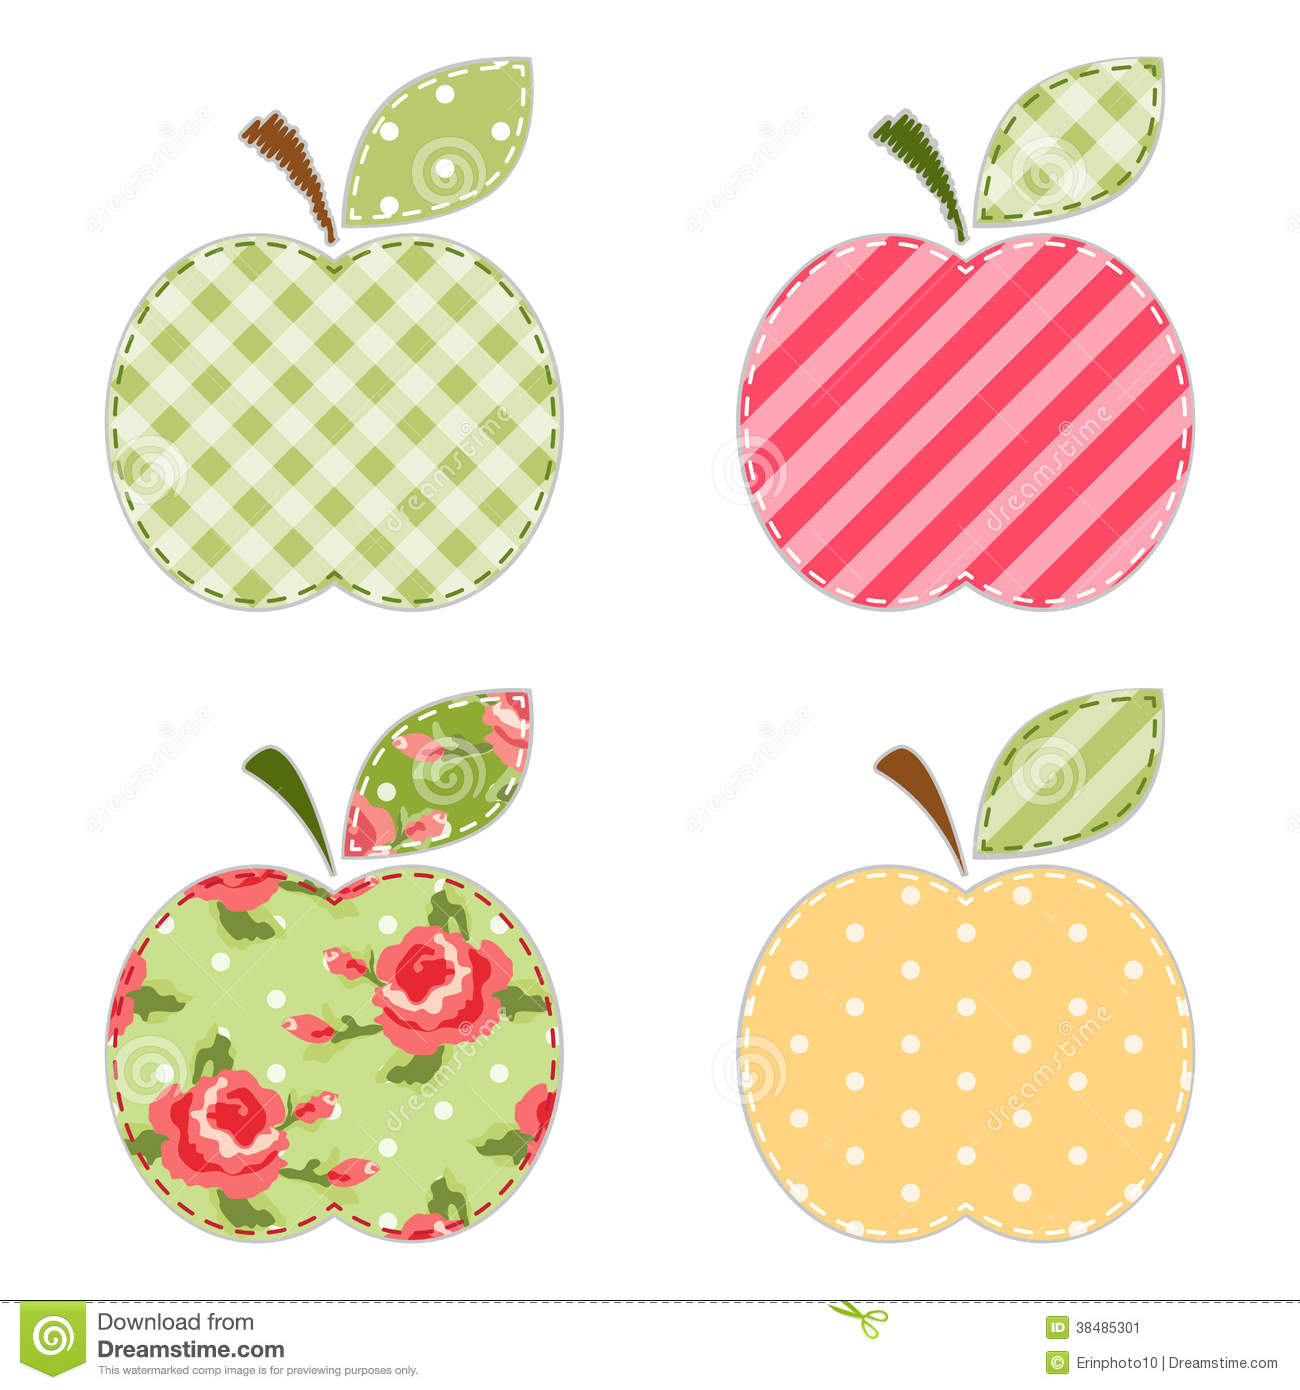 Apple clipart polka dot Collection Stock Apple clipart Image